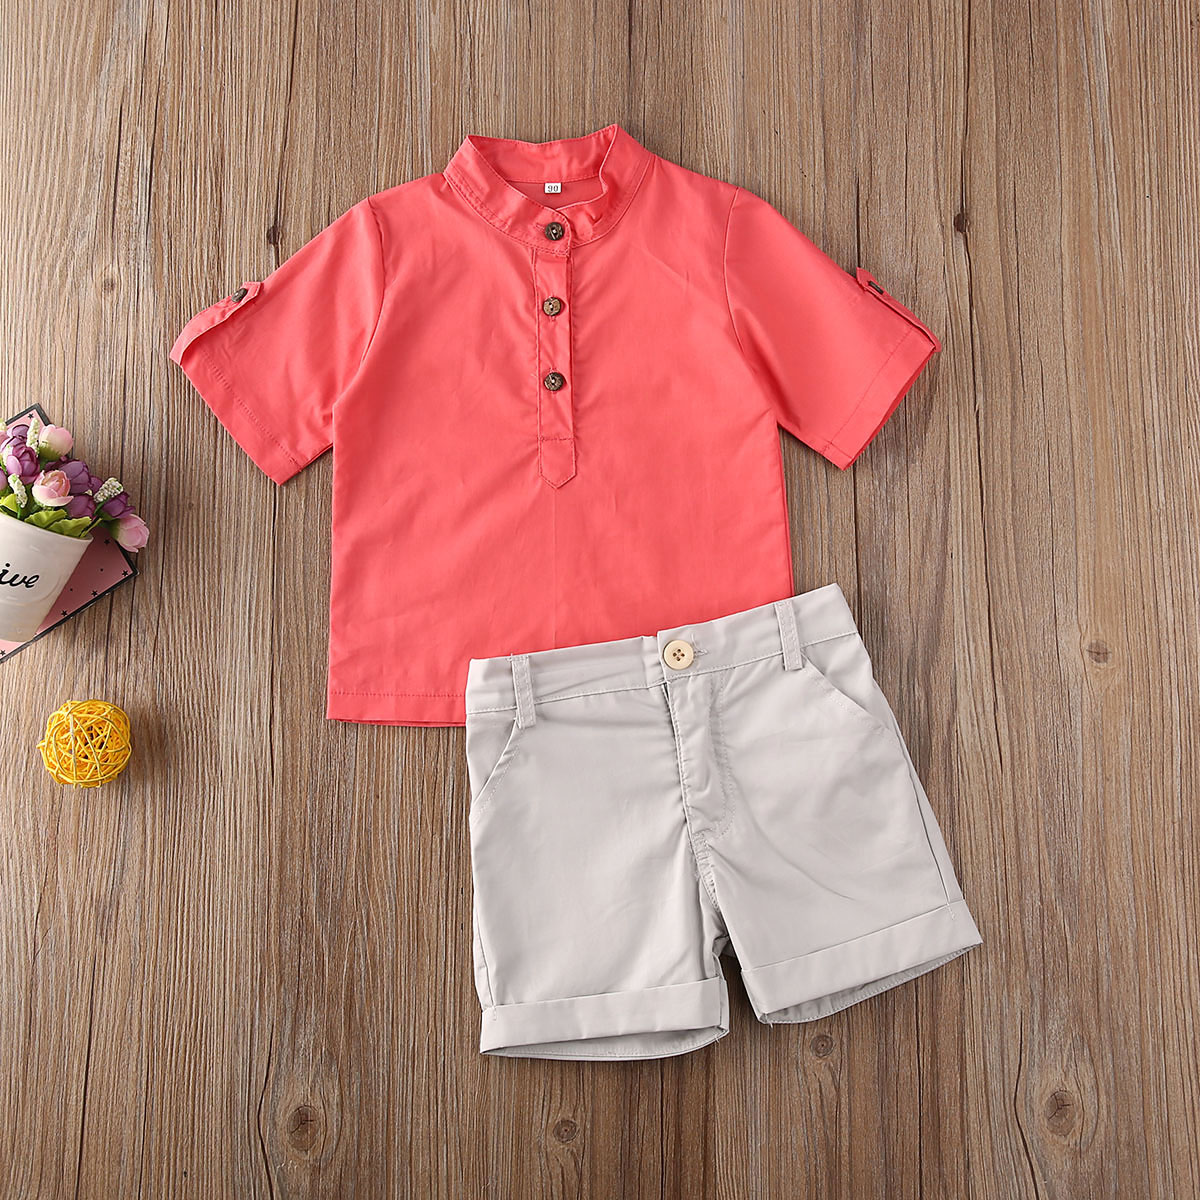 Emmababy Toddler Baby Boy Clothes Solid Color Short Sleeve Shirt Tops Short Pants 2Pcs Outfits Gentleman Formal Clothes